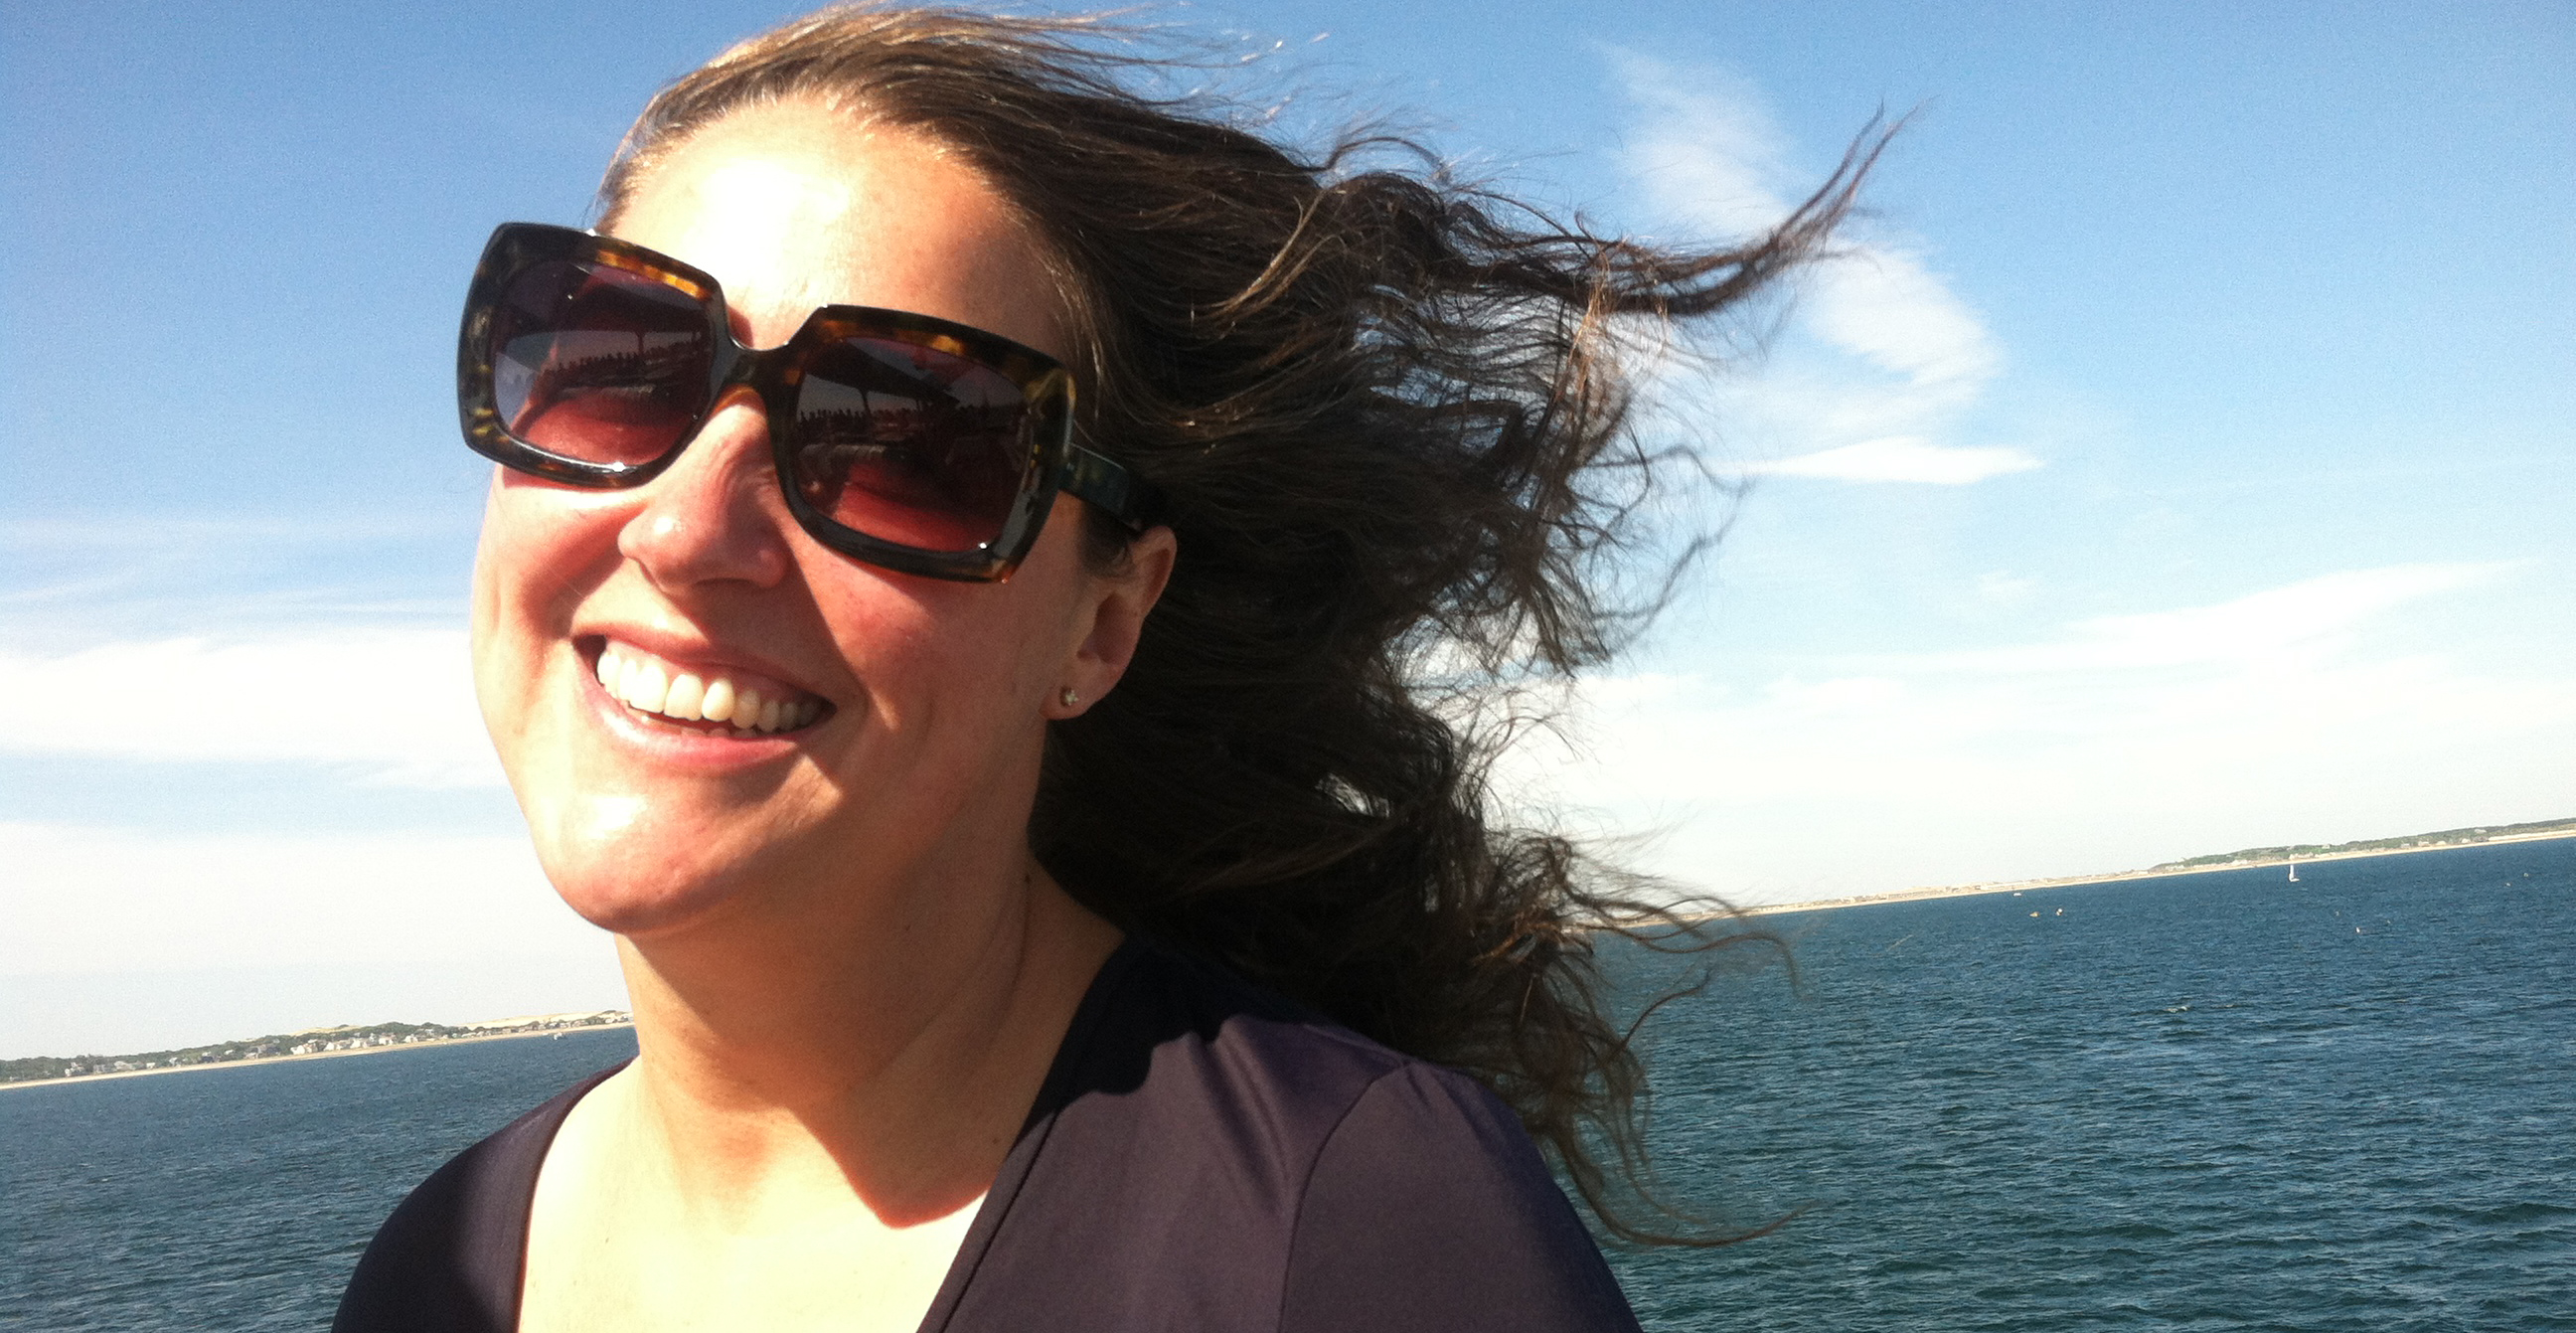 UMass Boston Poet Jill McDonough Wins Lannan Fellowship